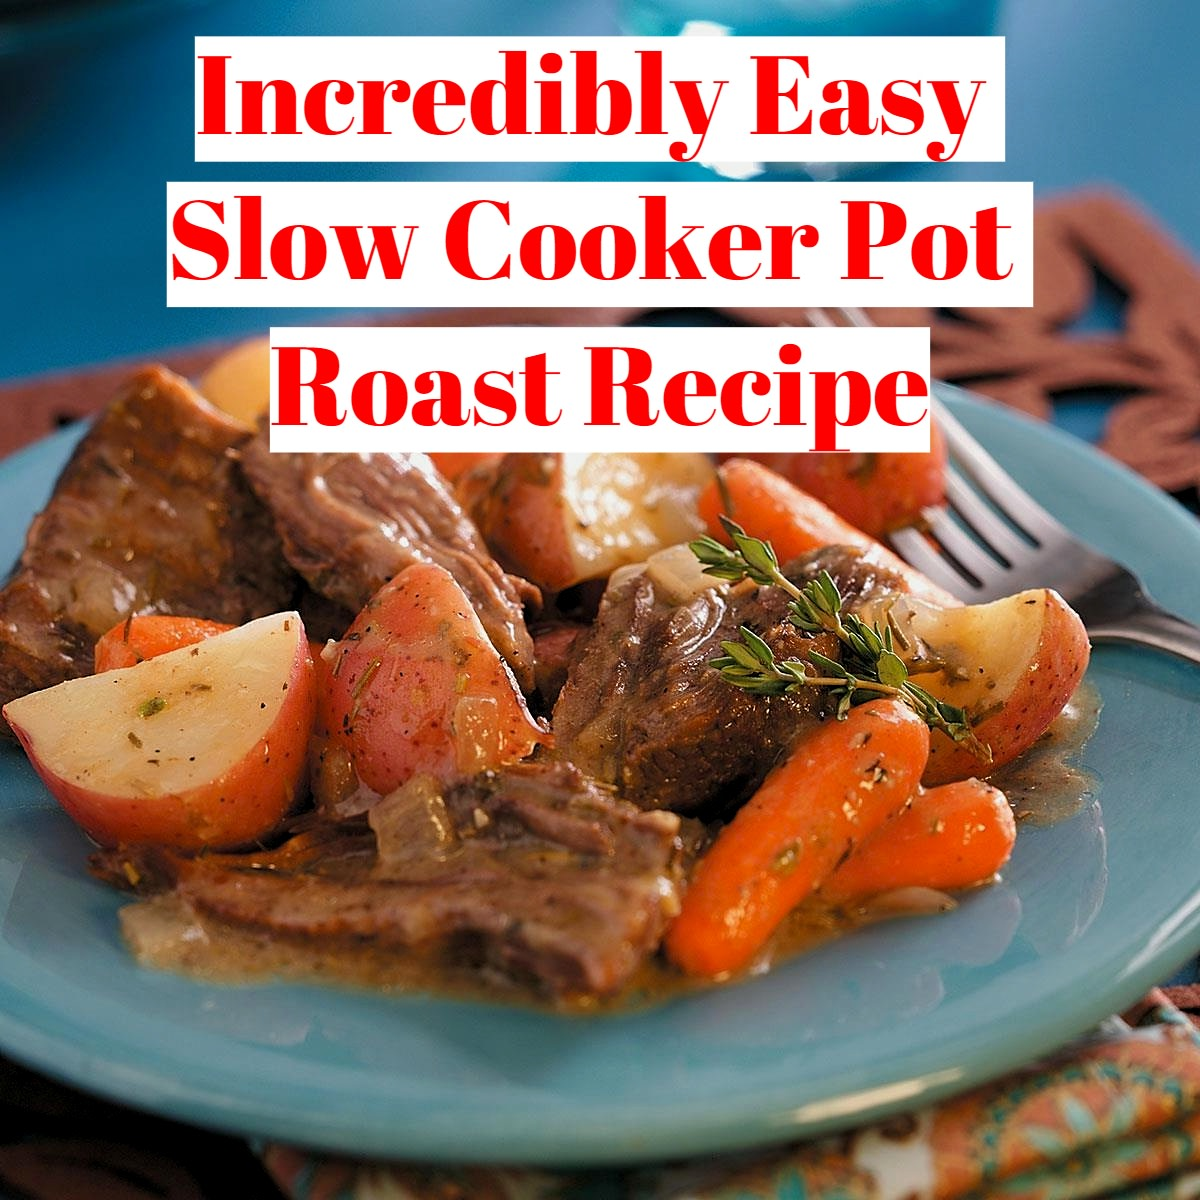 Incredibly Easy Slow Cooker Pot Roast Recipe